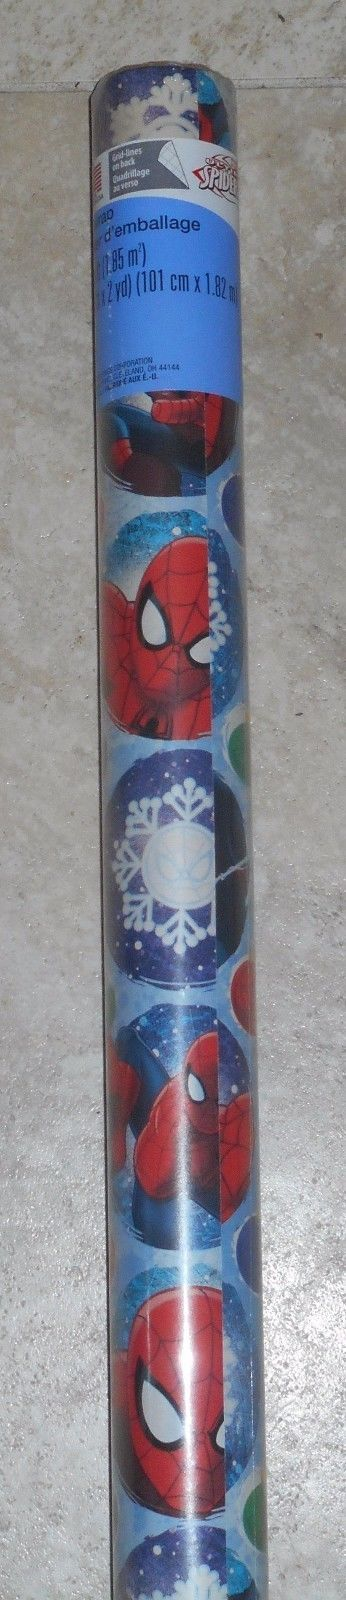 ULTIMATE SPIDER-MAN AMERICAN GREETINGS CHRISTMAS Wrapping PAPER 20 SQ FT ROLL | Home & Garden, Greeting Cards & Party Supply, Gift Wrapping Supplies | eBay!